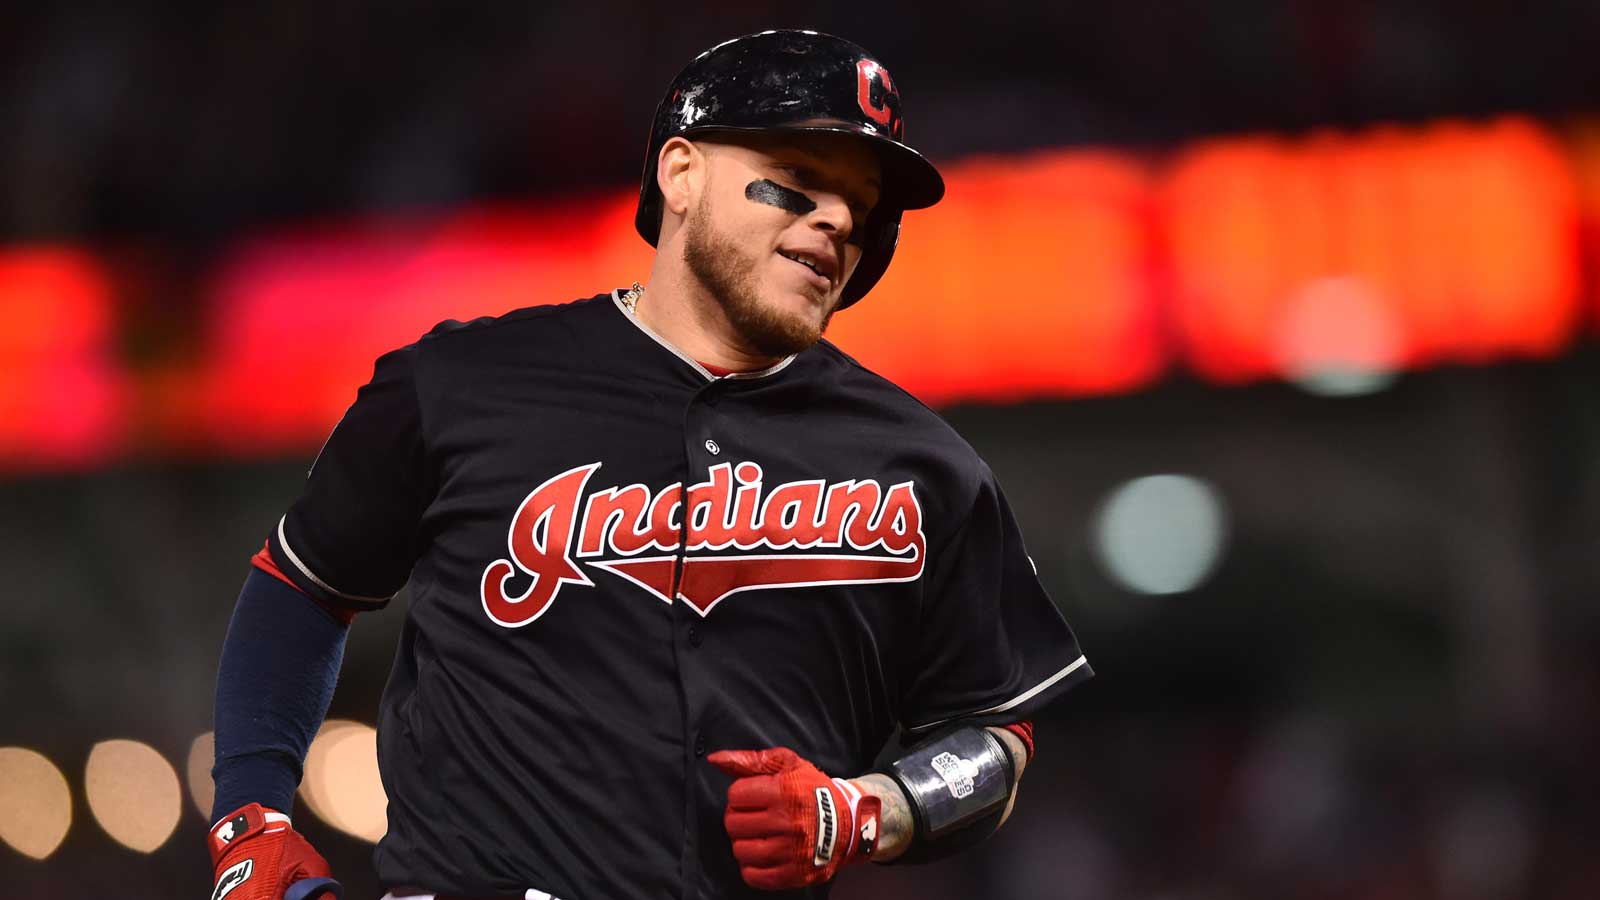 Twice as nice: Indians' Perez hits 2 homers in Series opener